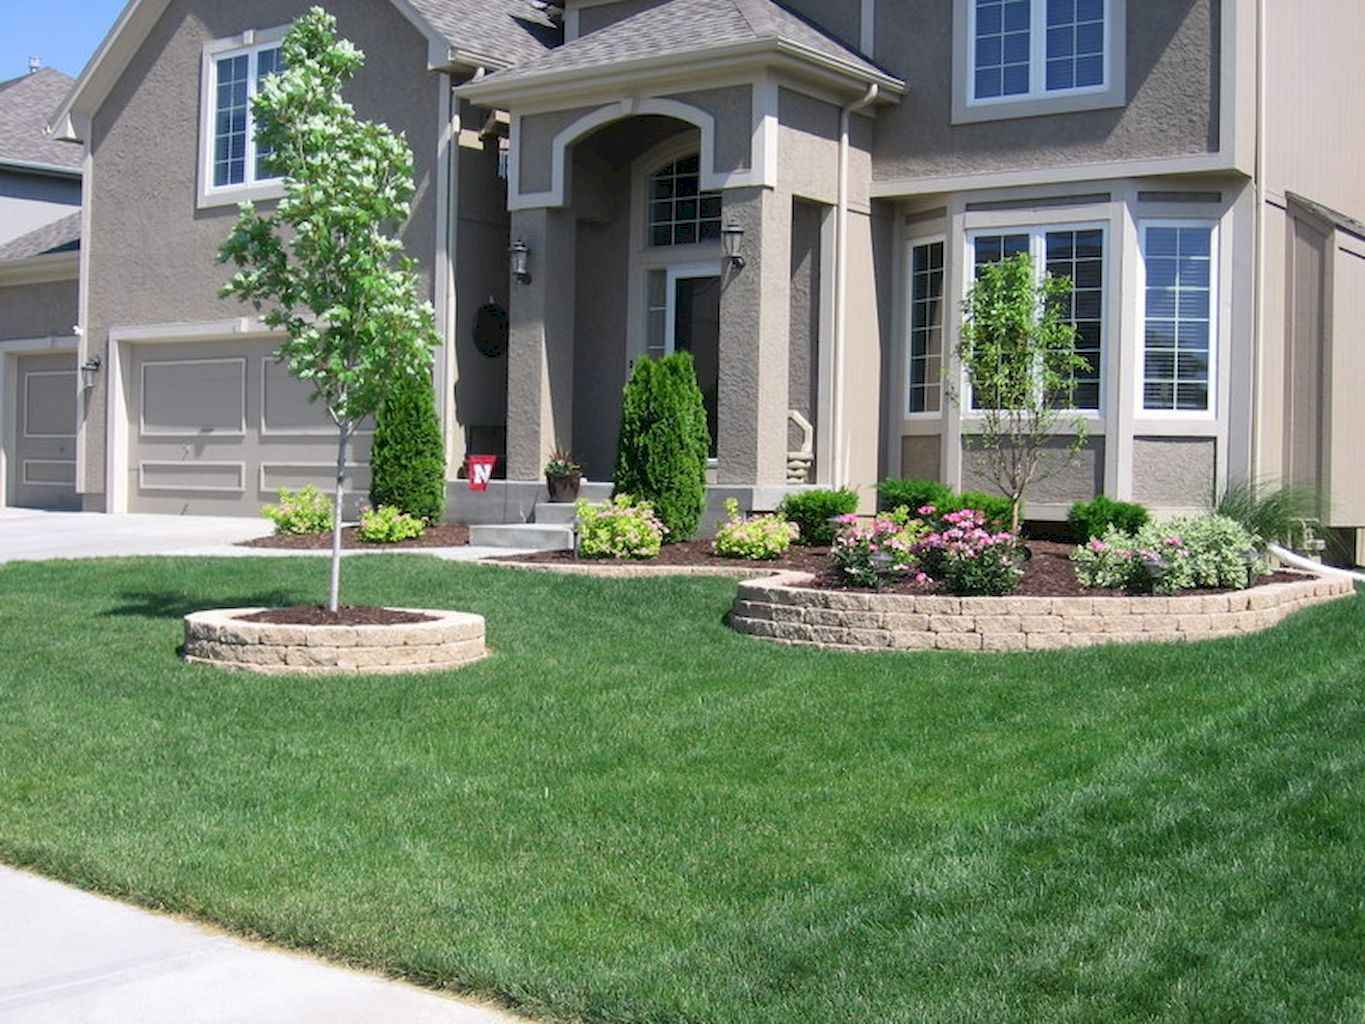 35 Beautiful Frontyard Landscaping Design Ideas and Remodel (21)